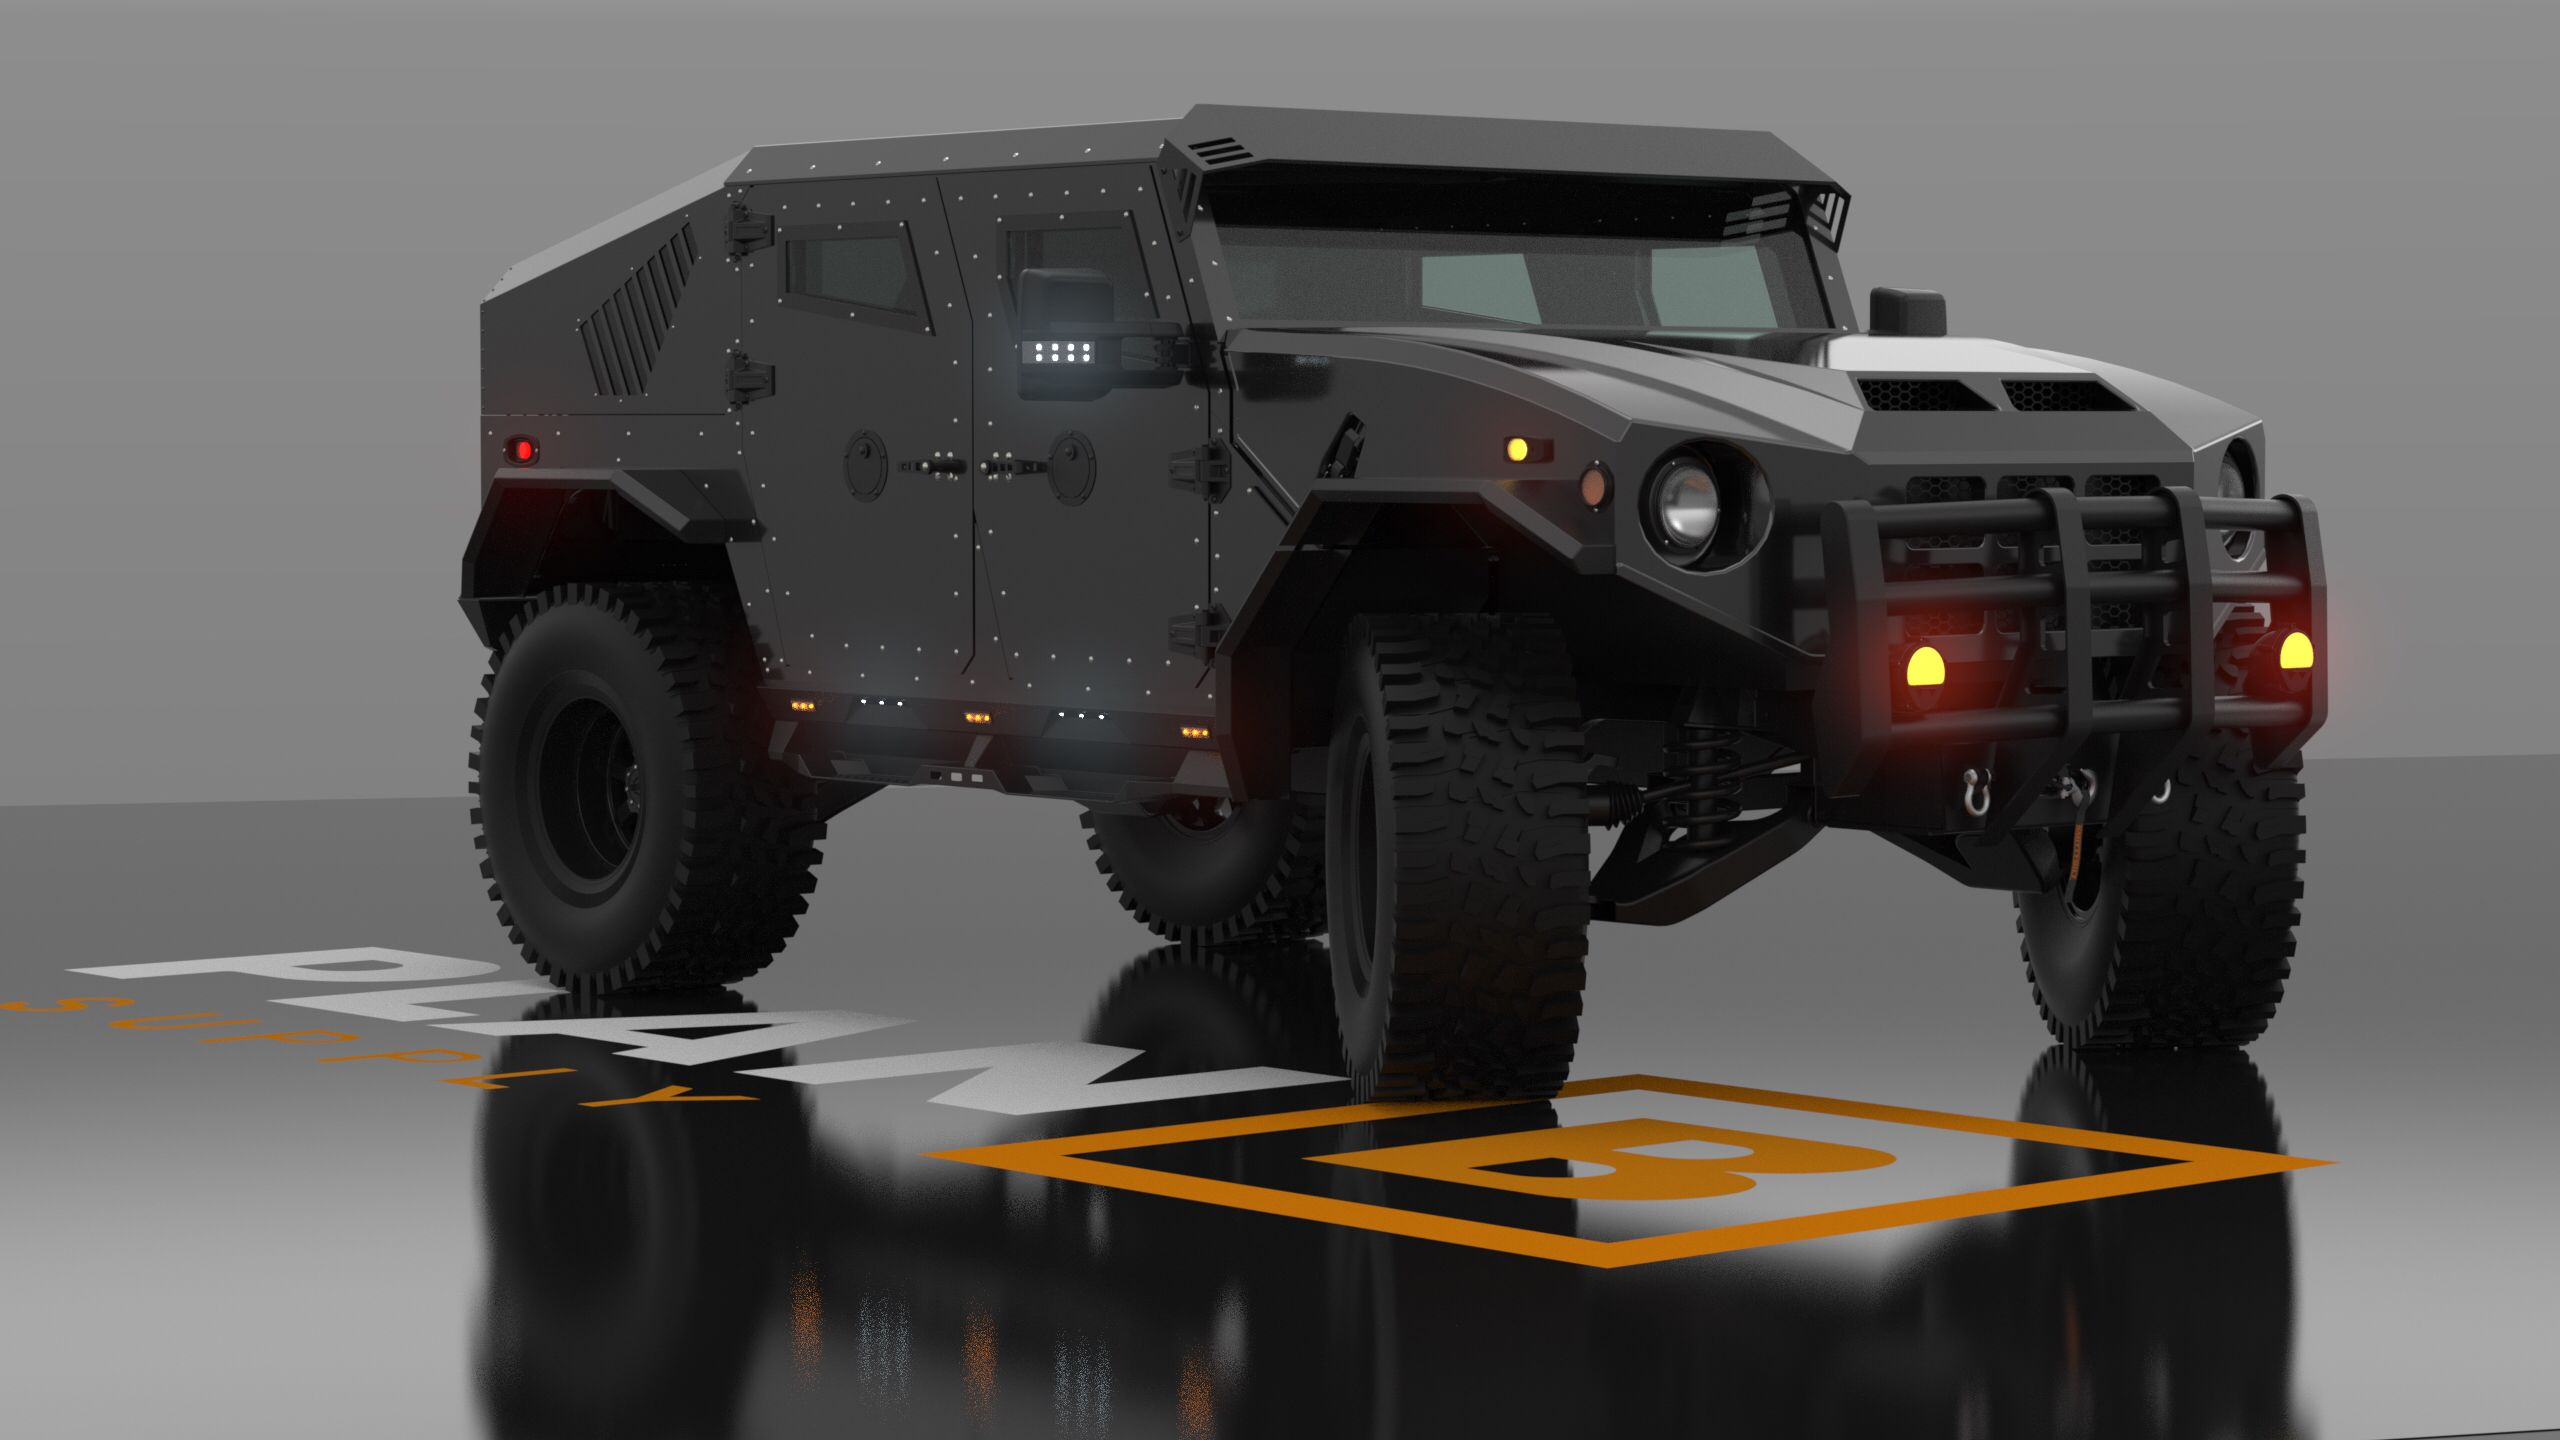 New Hummer H1 Alpha Duramax 2019 2020 model Concept being